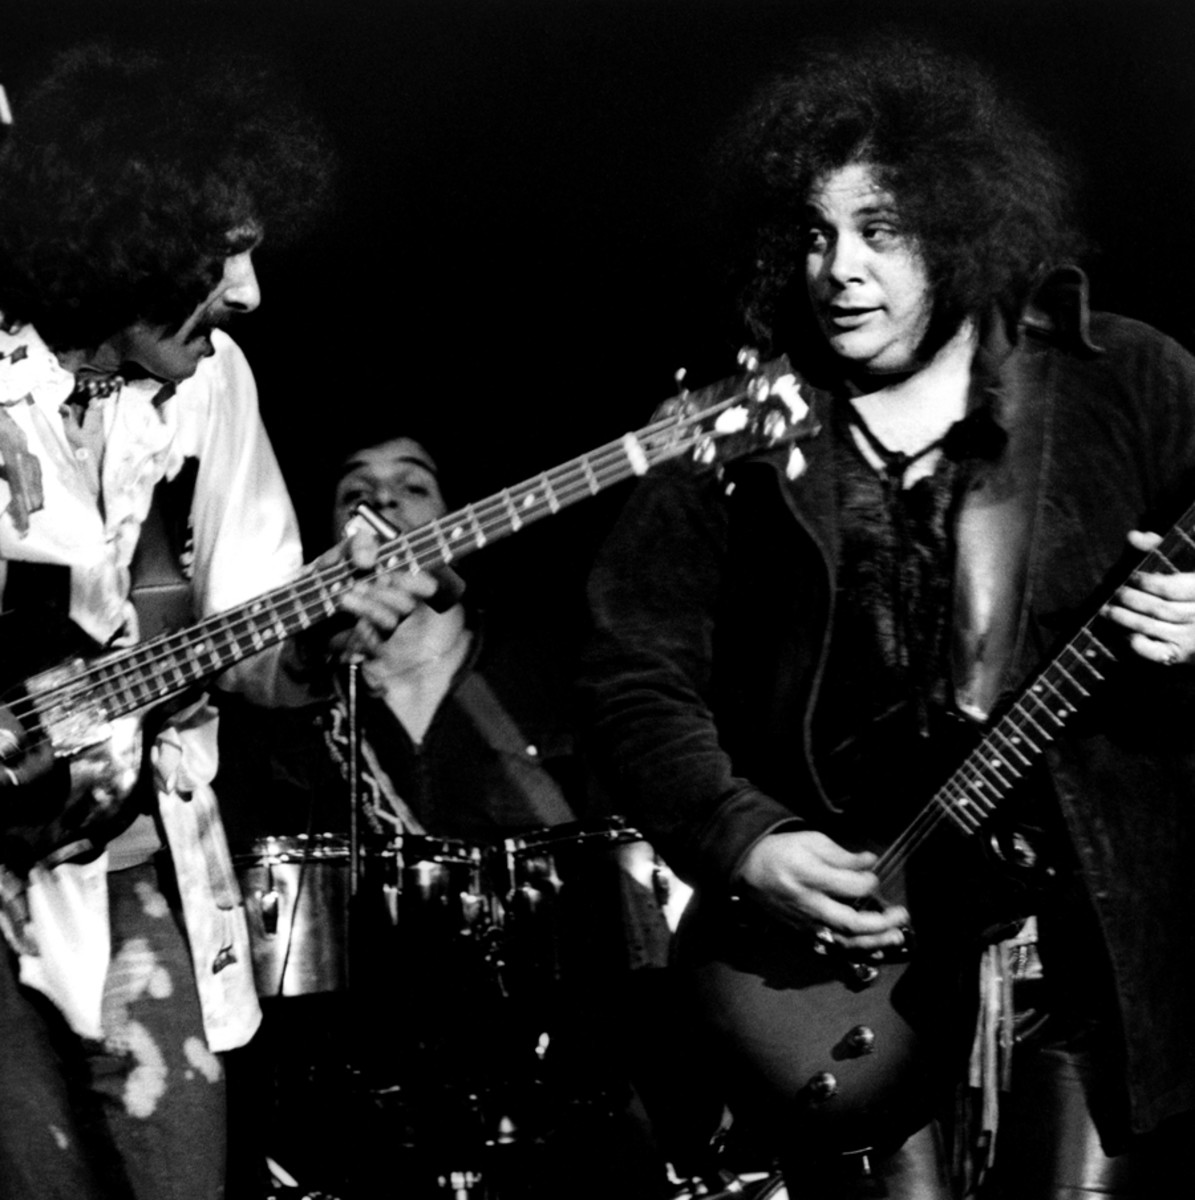 Felix Pappalardi and Leslie West performing together as Mountain, April, 1970 in San Francisco, California.